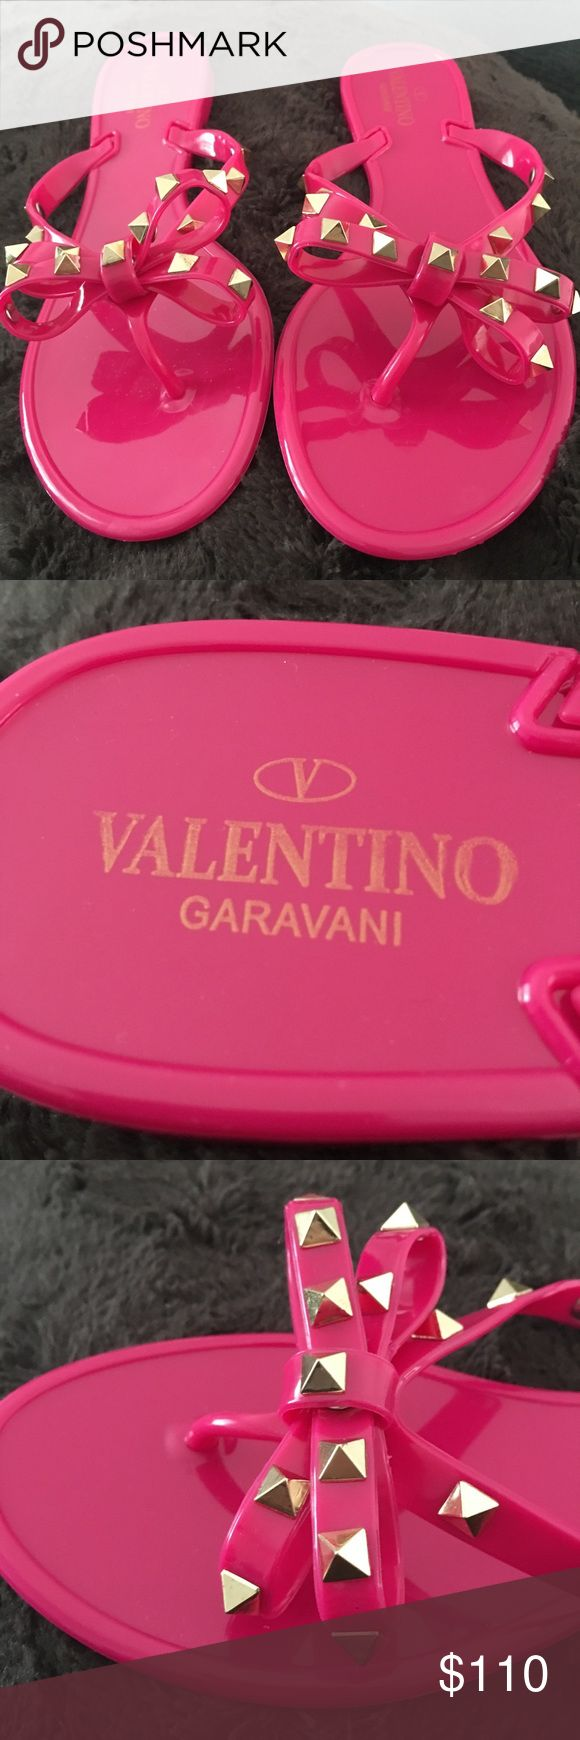 """""""VALENTINO Rockstud Flip Flops"""" Valentino Garavani PVC Rockstud rubber flip flops in bright pink. - Bow detail with warm color palladium-finish studs  - Sole with lace motif  DETAILS Round toeline Contrasting applications  These are a euro size 39. They are more suited for a size 7-7.5. They are gorgeous and elegant, yet casual & fun. They are more beautiful in person!!!! ❤️ **PLEASE DON'T ask the obvious** Price reflects authenticity. 🙌🏼Quality is 1:1...Submit your offers! 😘 ((No Box…"""